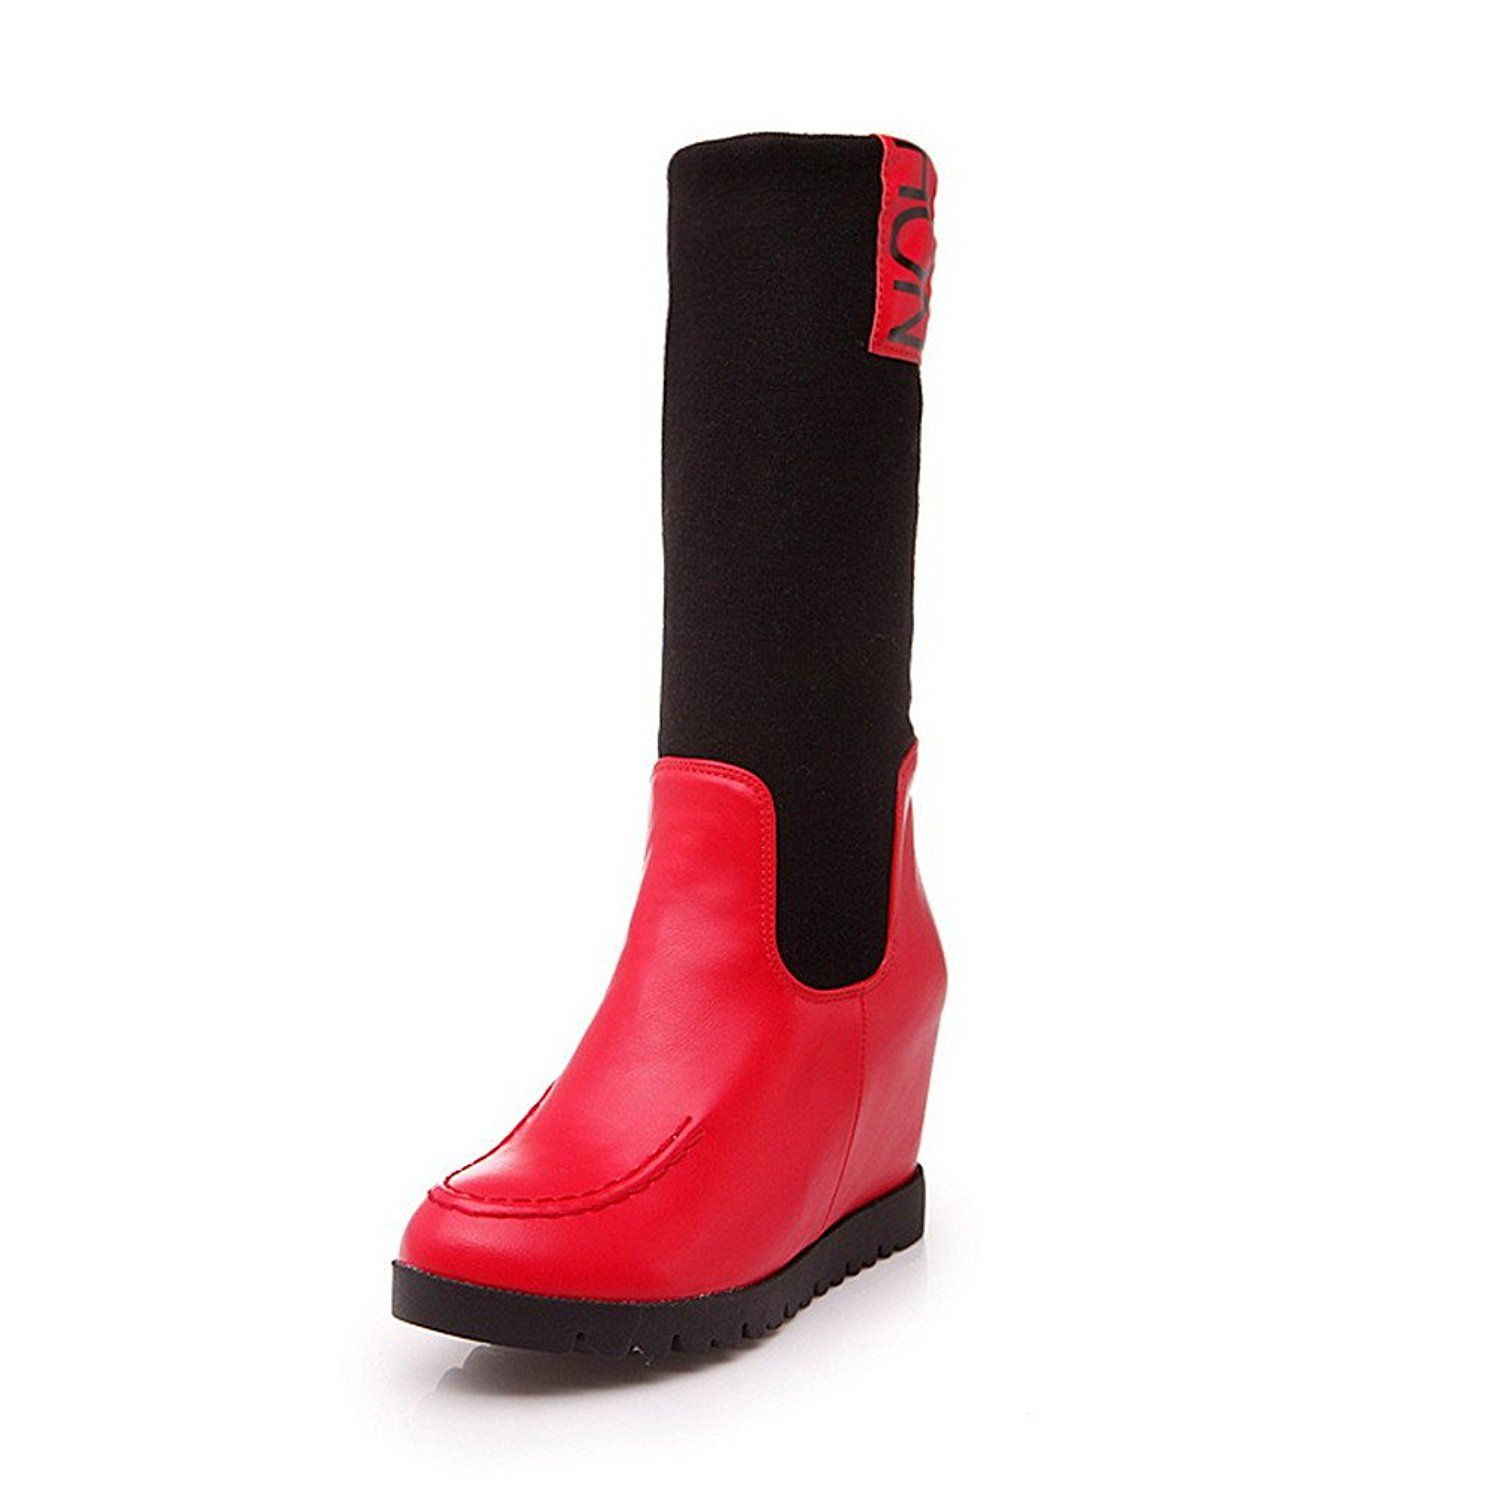 Weipoot Women S Kitten Heels Round Toe Elastic Fabric Mid Top Boots Continue To The Product At The Image Kitten Heel Boots Boots Women S Over The Knee Boots